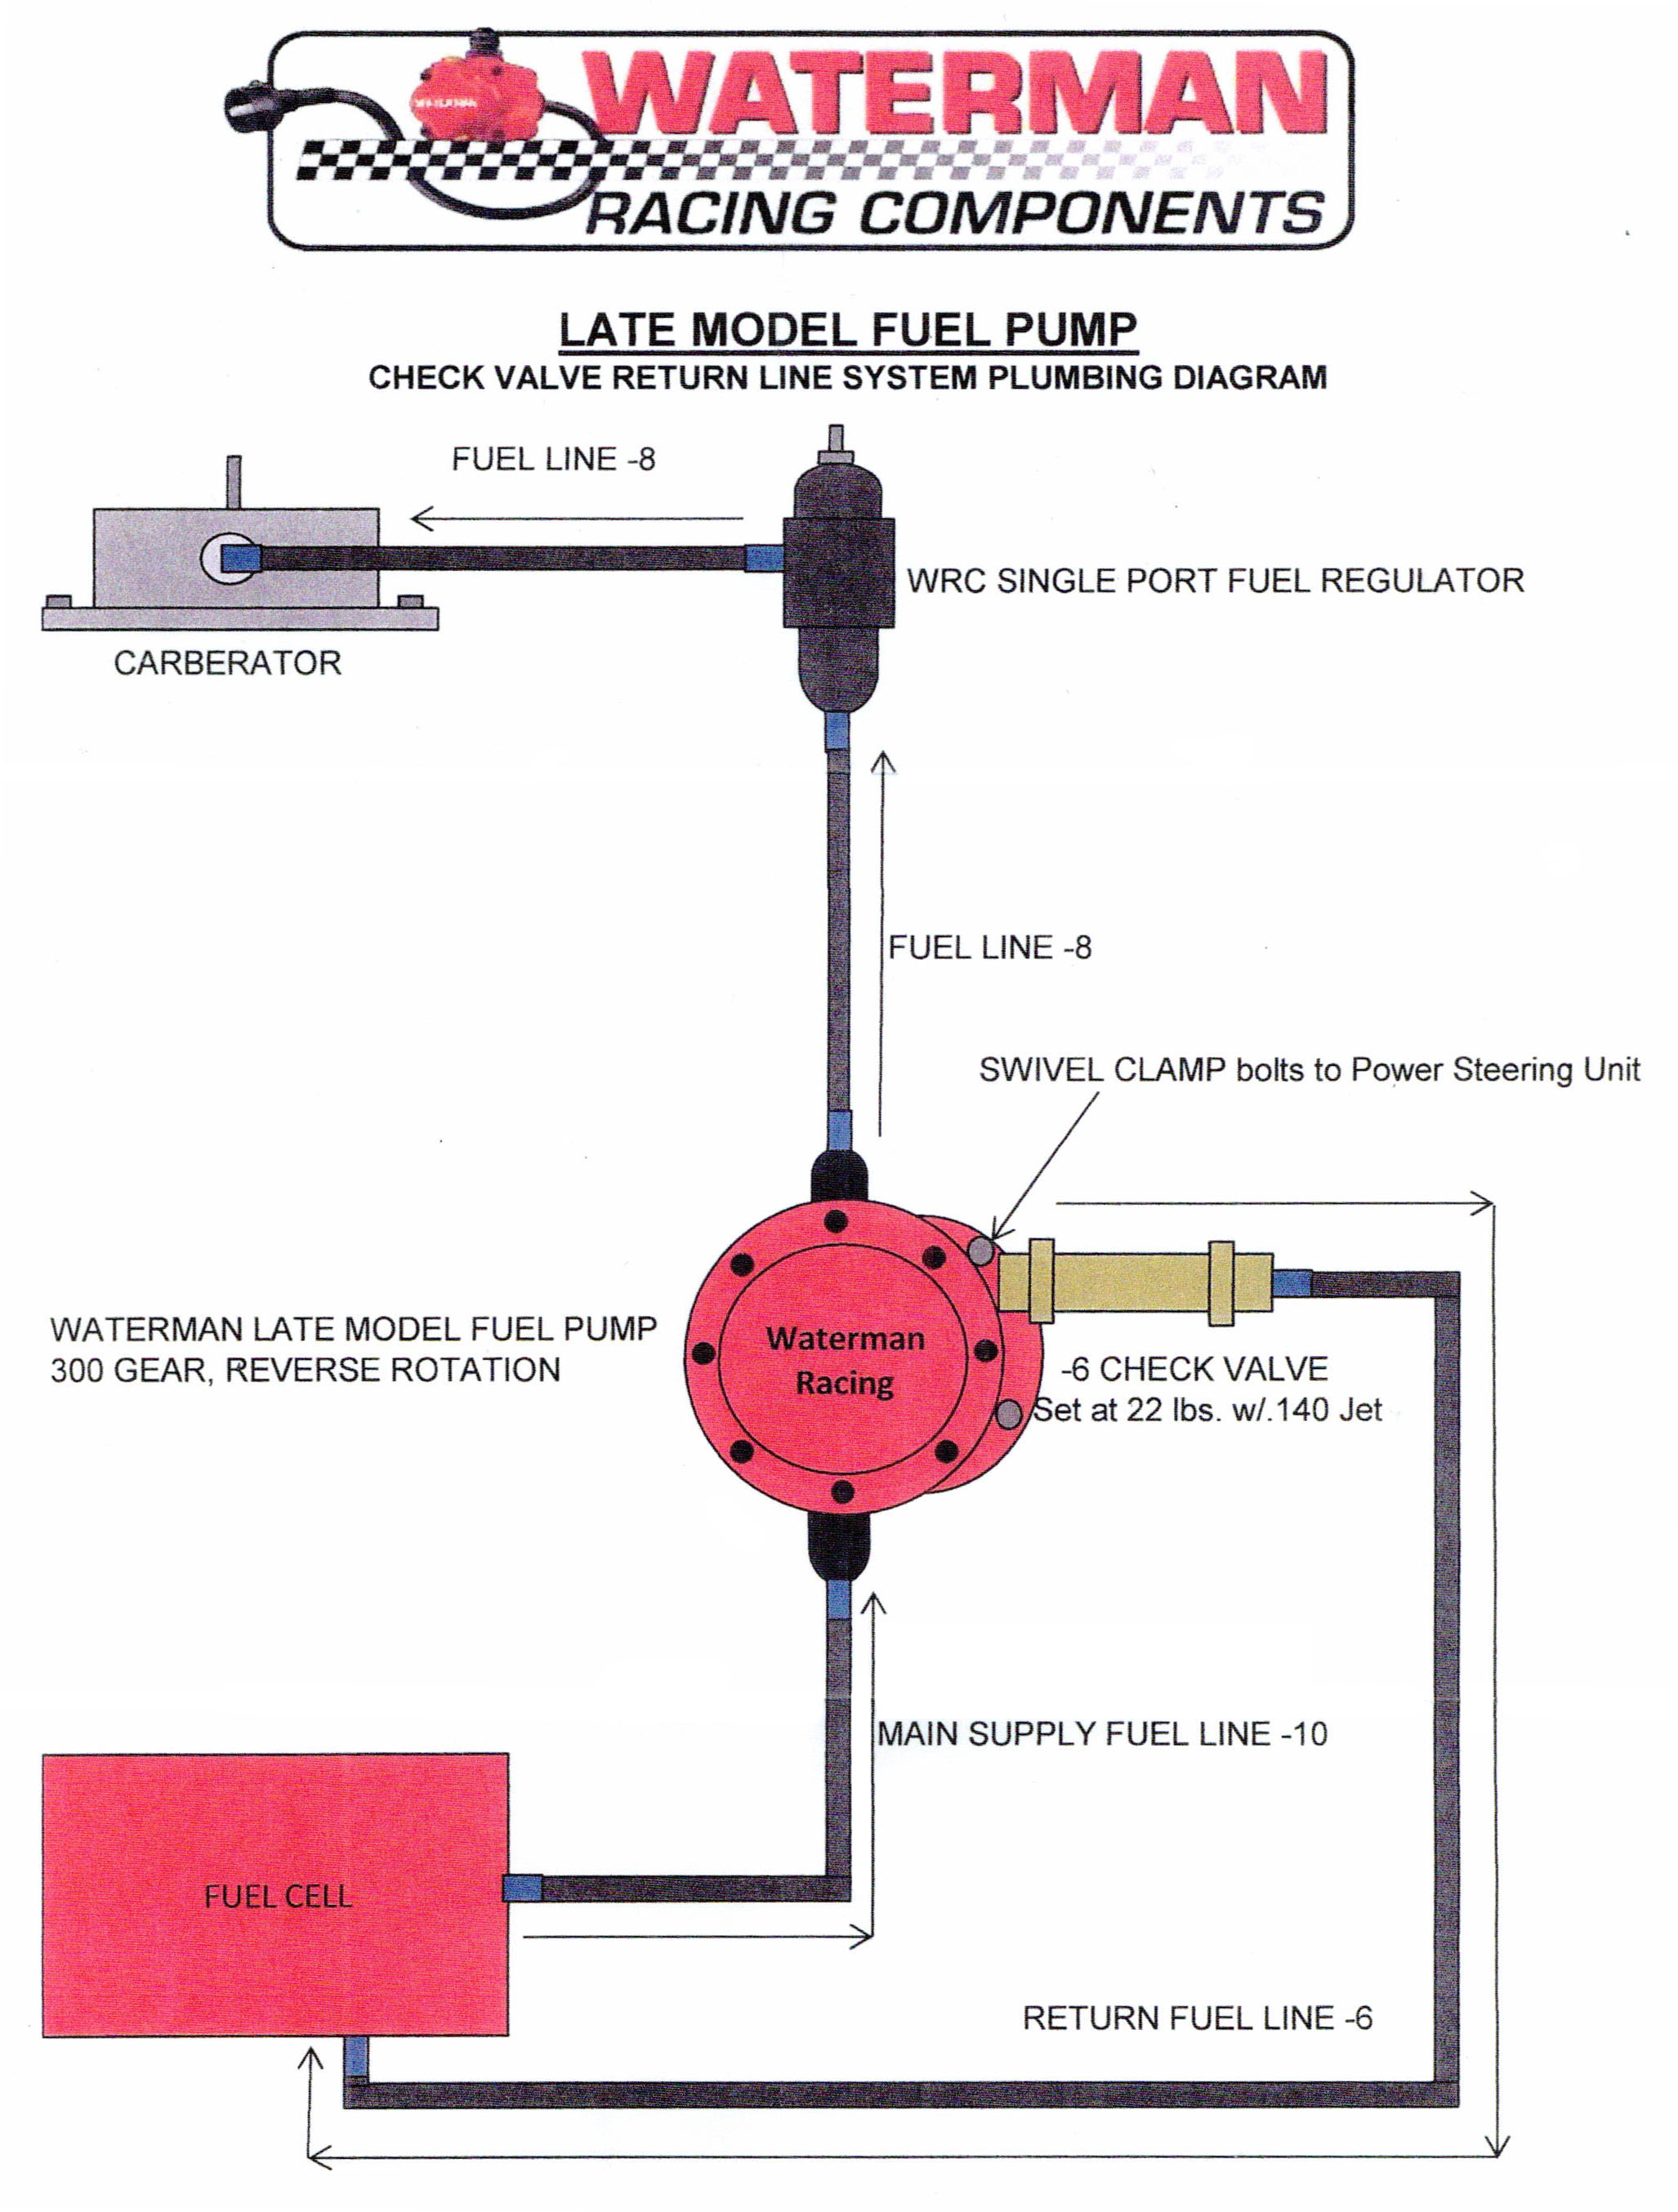 waterman's most common fuel system diagram using this lm300 pump: